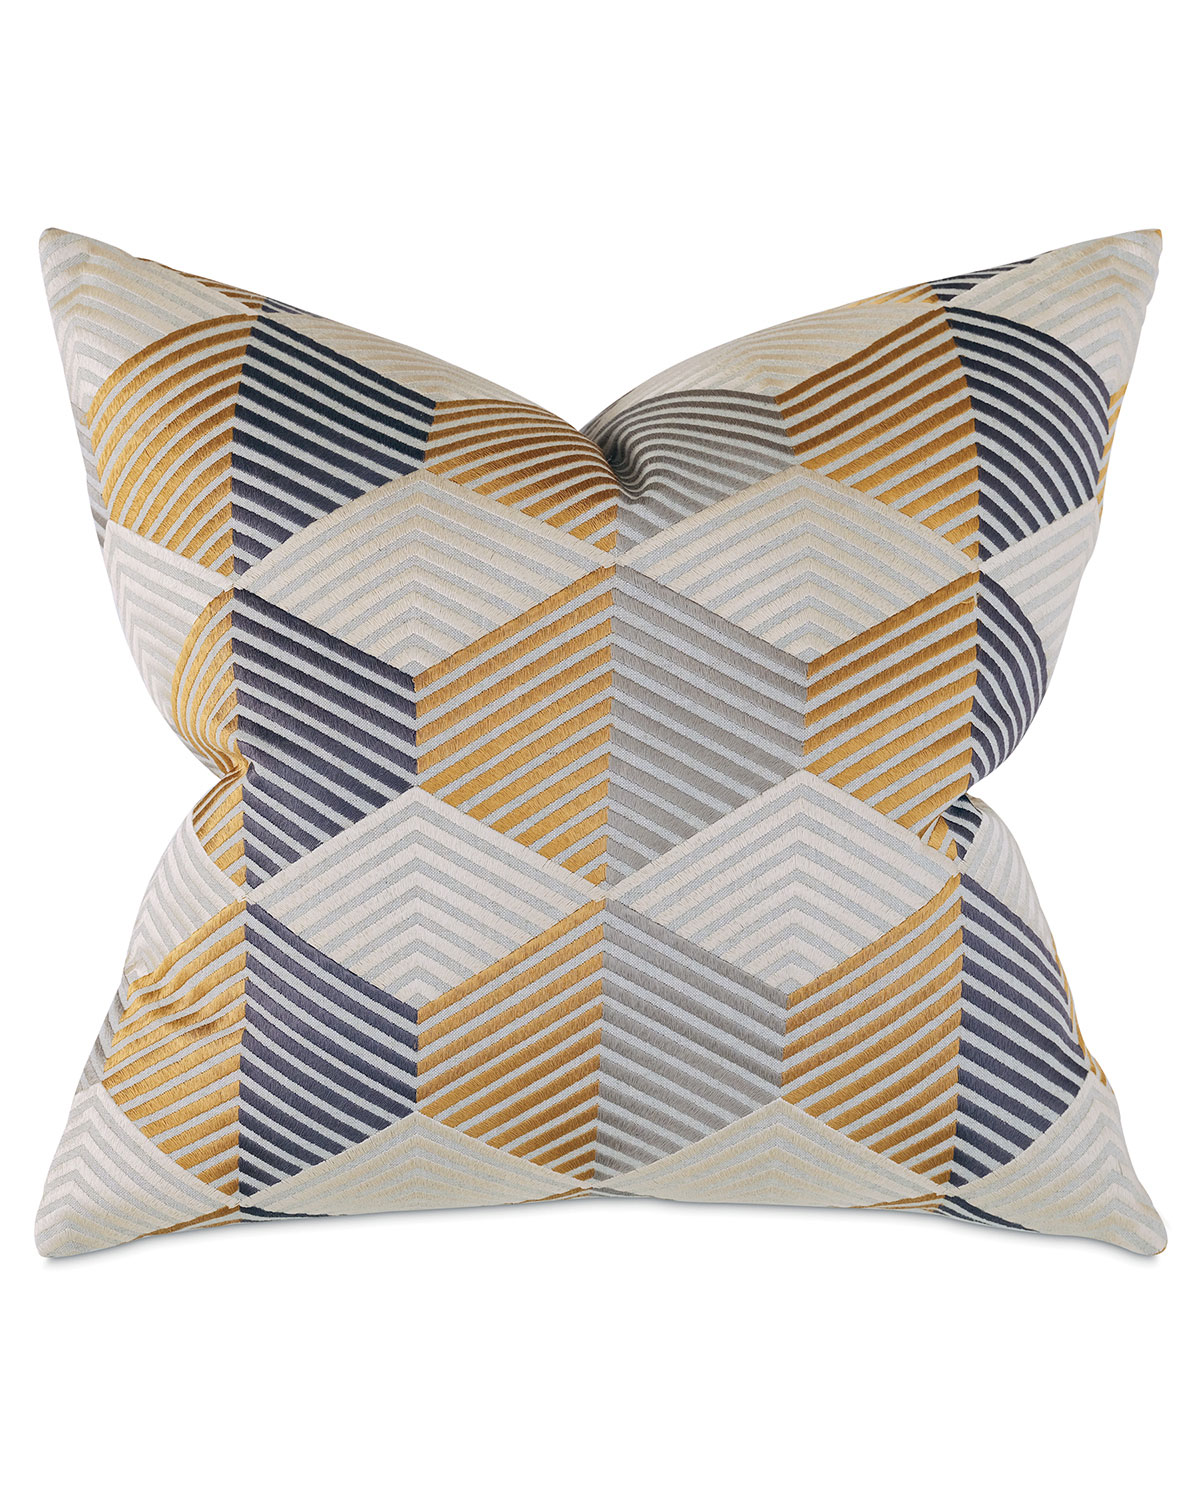 Eastern Accents Etude Zigzag Decorative Pillow